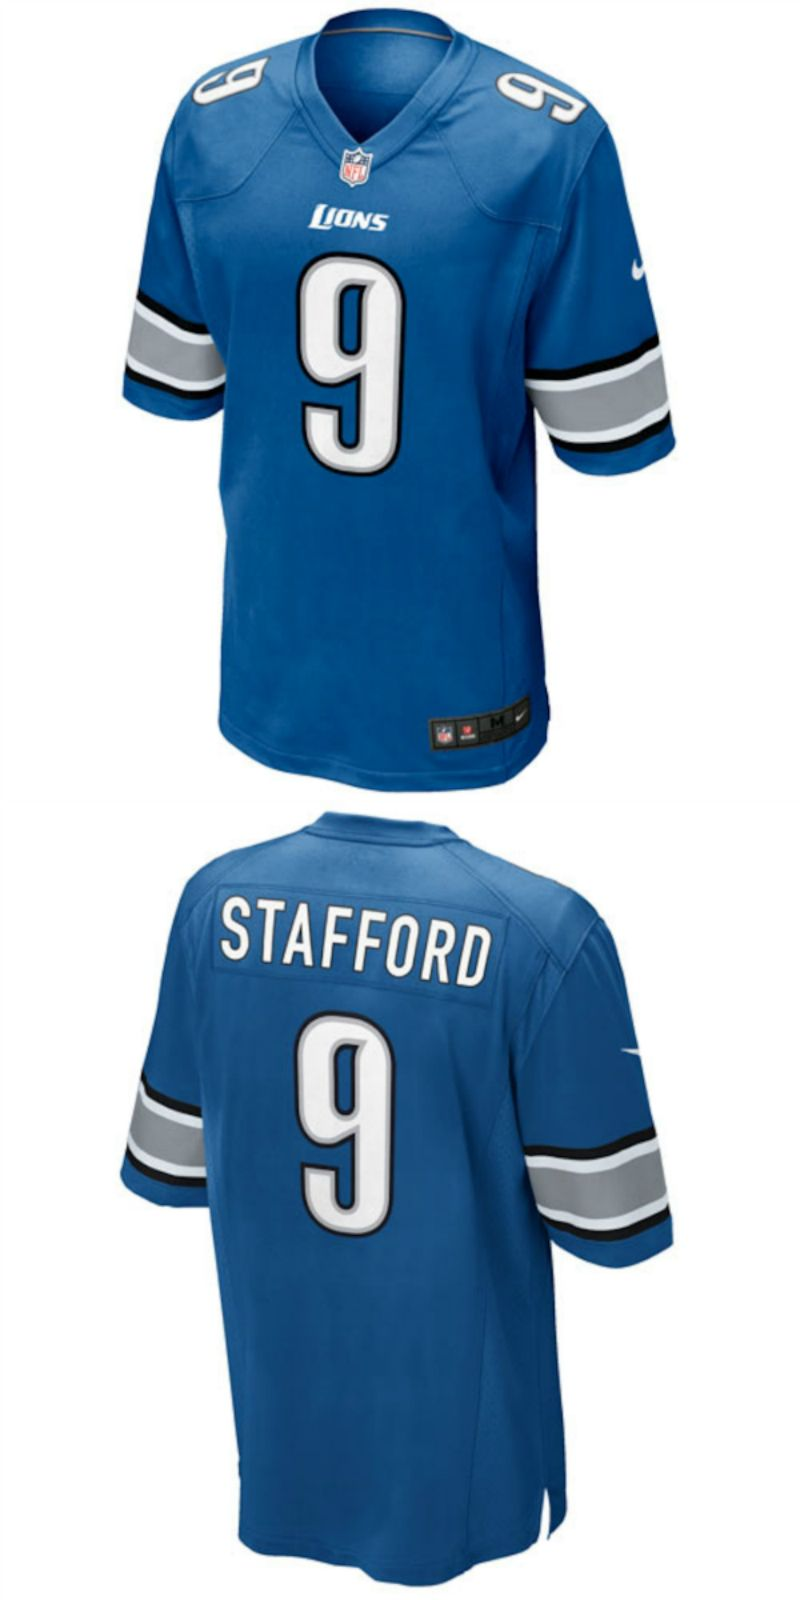 Up To 70 Off Matthew Stafford Detroit Lions Nike Game Jersey Light Blue Detroit Lion Logo Birthday Party Gift Nfl Outfits Detroit Lions Chicago Bears Jersey